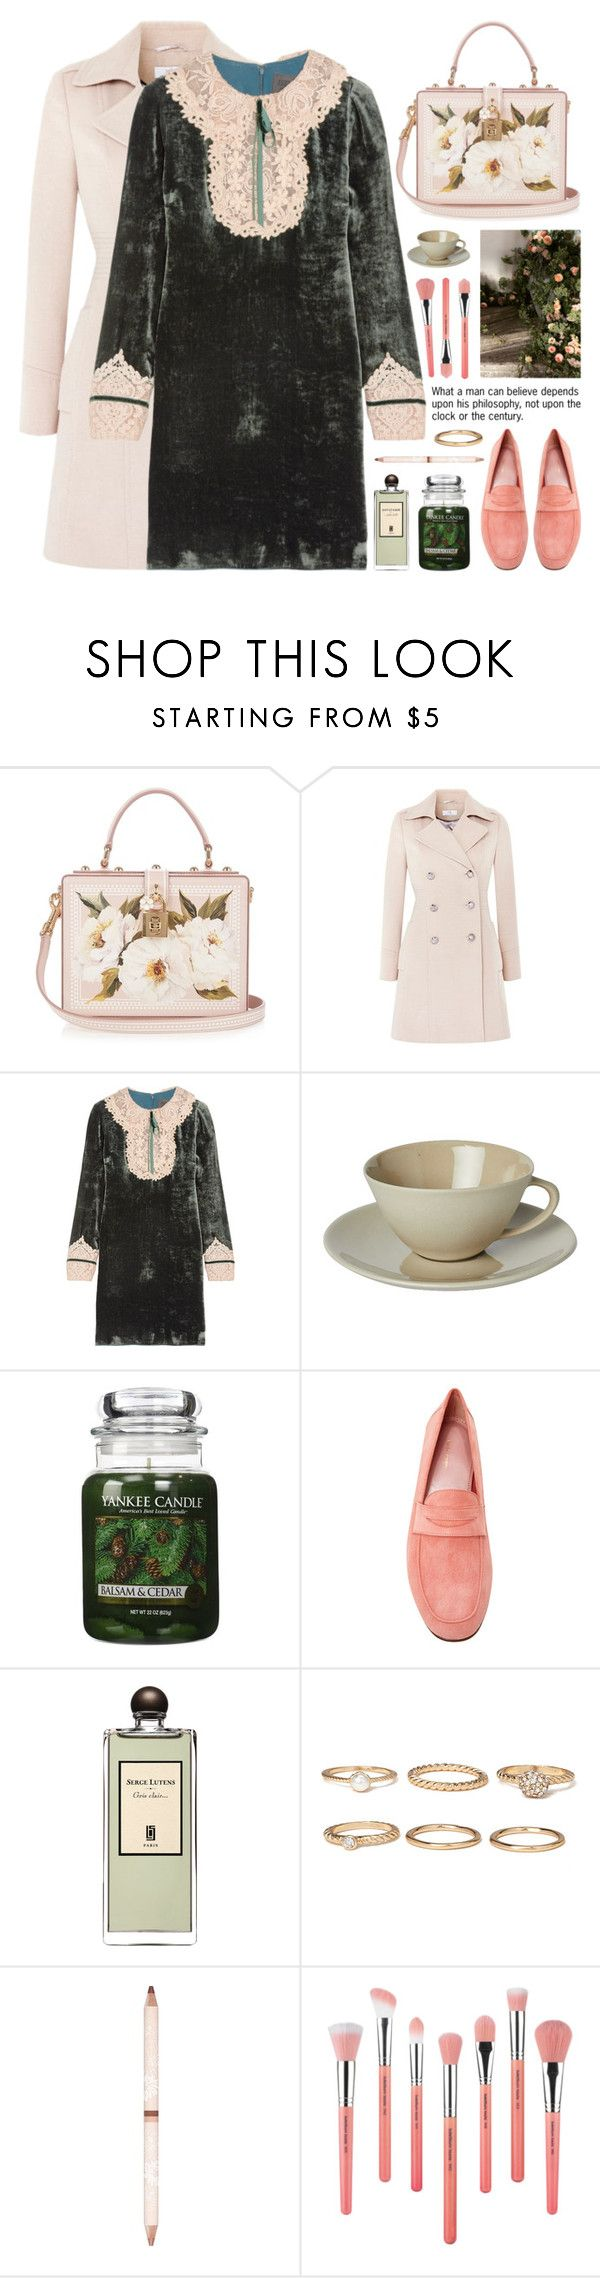 """""""lace & velvet mini dress"""" by jesuisunlapin ❤ liked on Polyvore featuring Dolce&Gabbana, Anna Sui, Mud Australia, Yankee Candle, Mansur Gavriel, Serge Lutens, Forever 21, Paul & Joe, Bdellium Tools and vintage"""